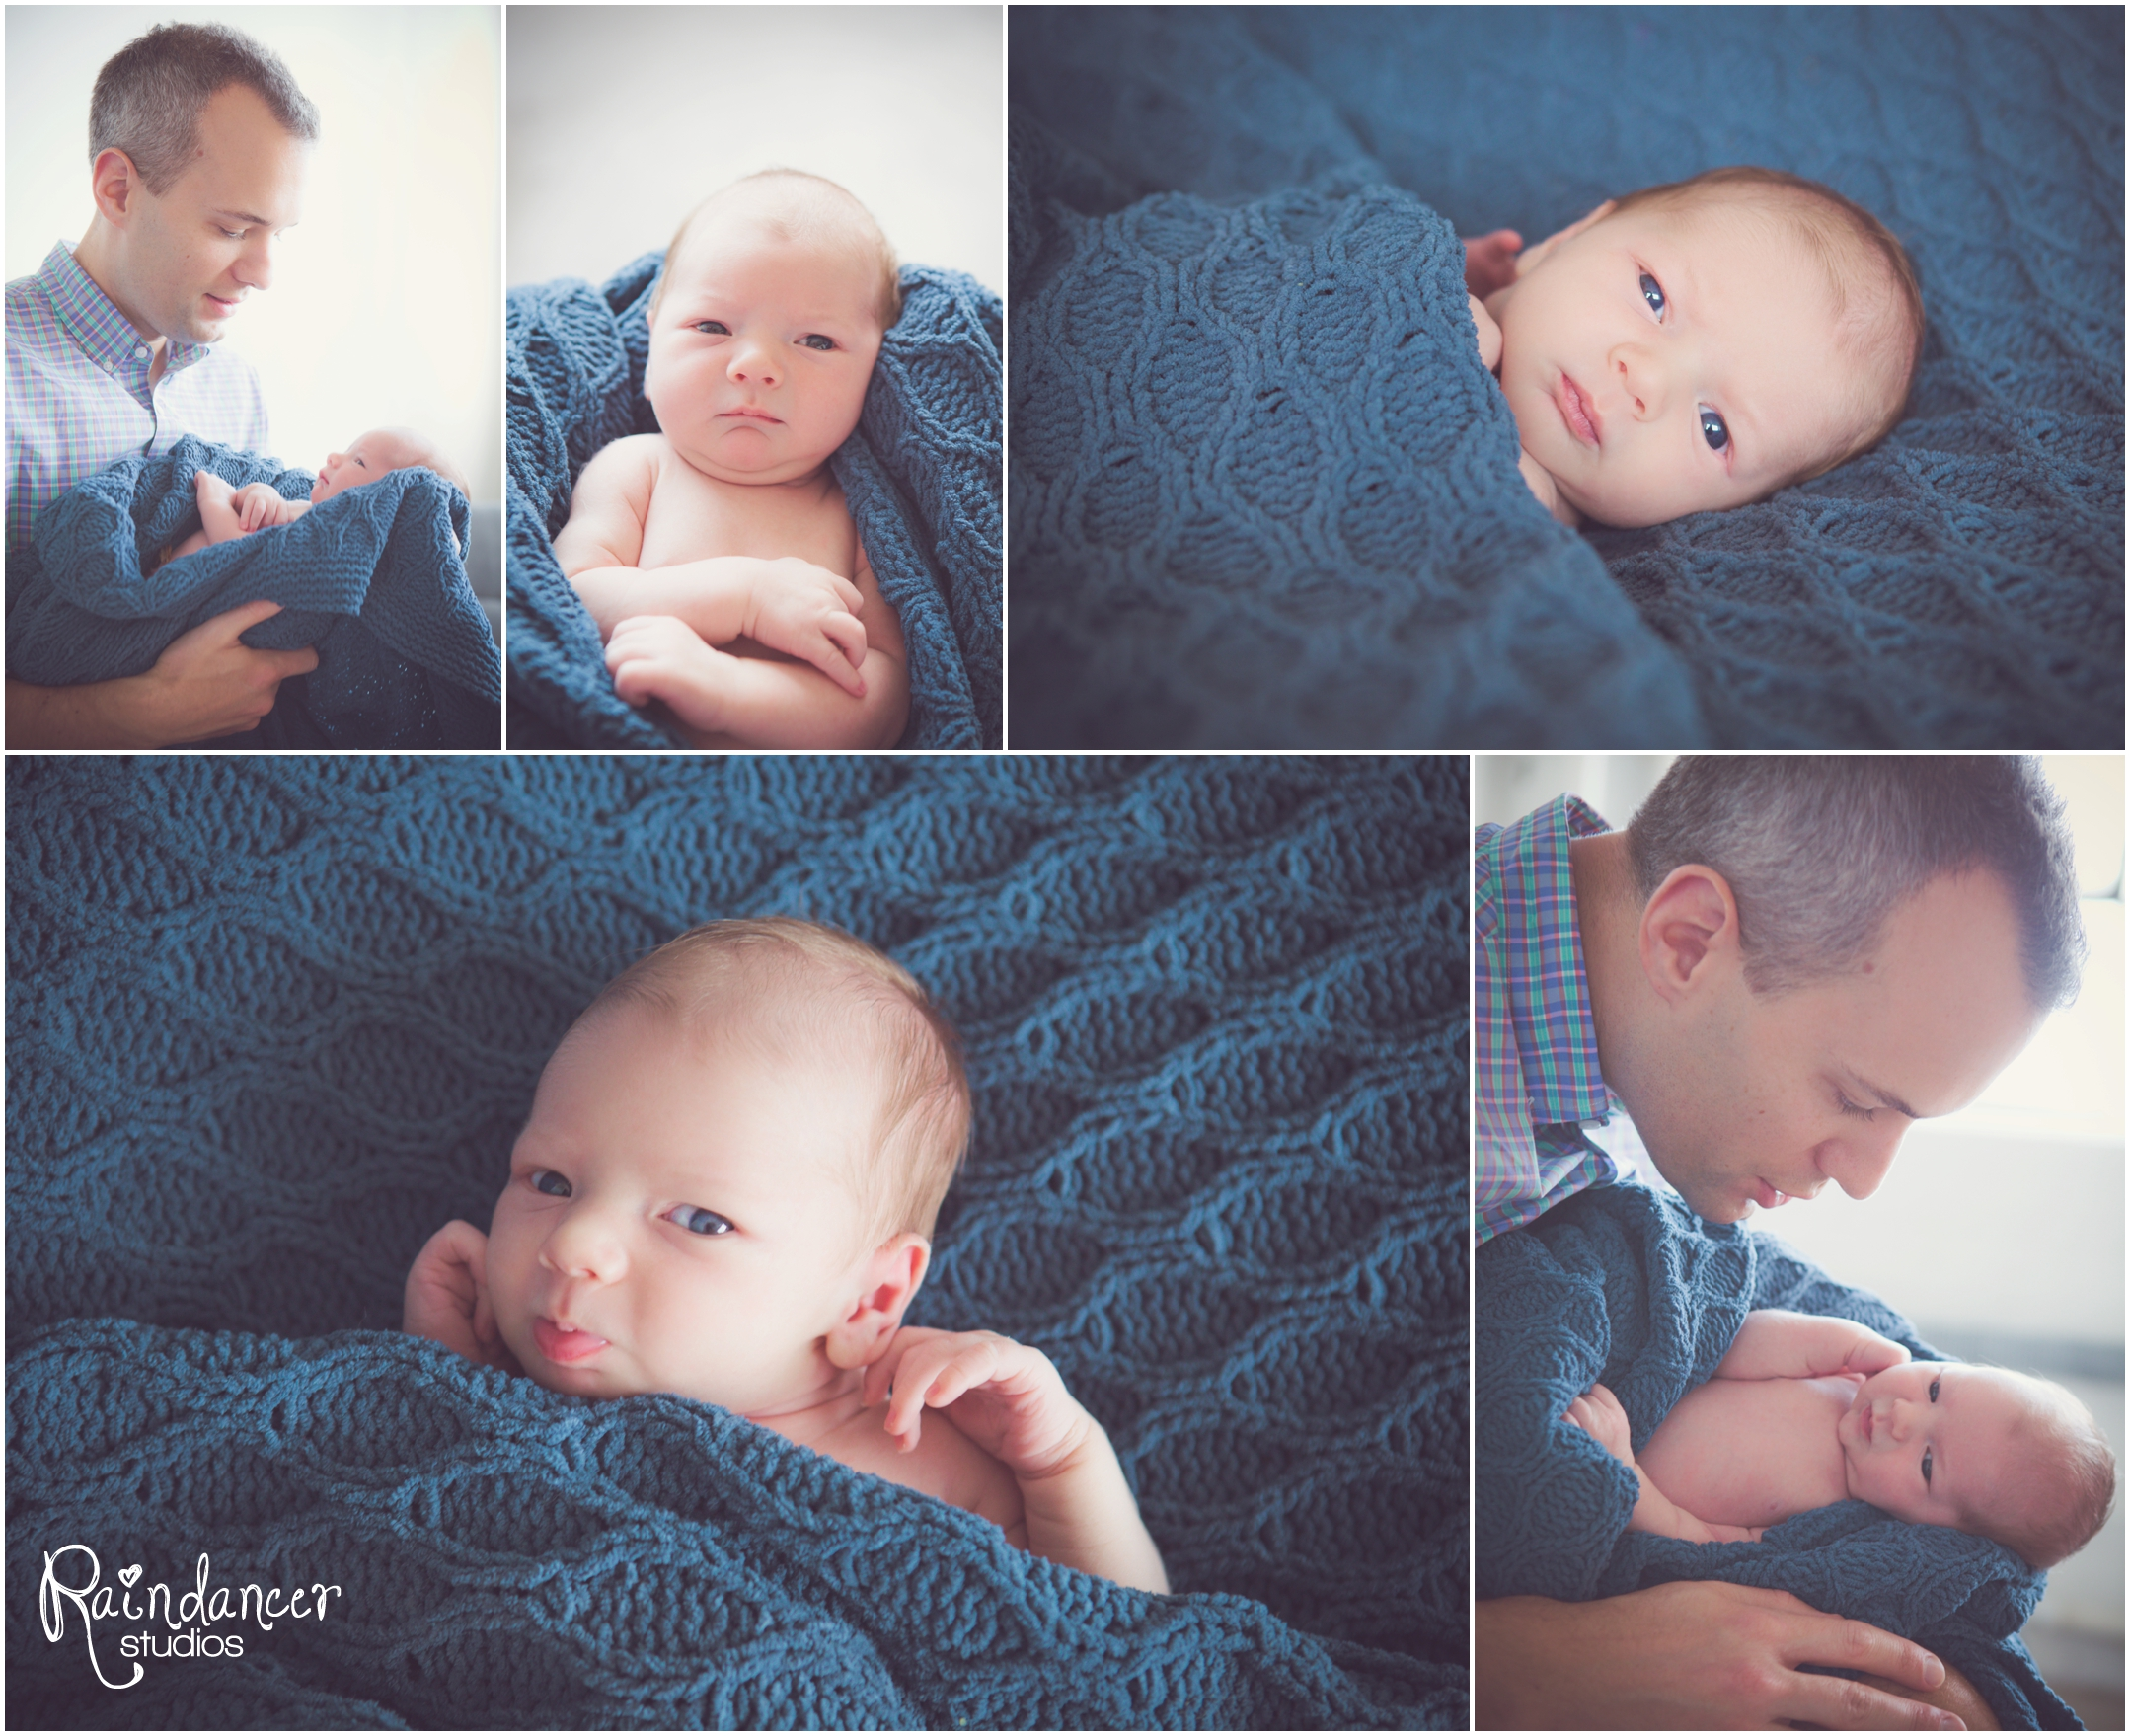 Indianapolis Newborn Photographer, Indianapolis newborn photography, Indy newborn photographer, Indianapolis baby photographer, Indianapolis Family Photographer